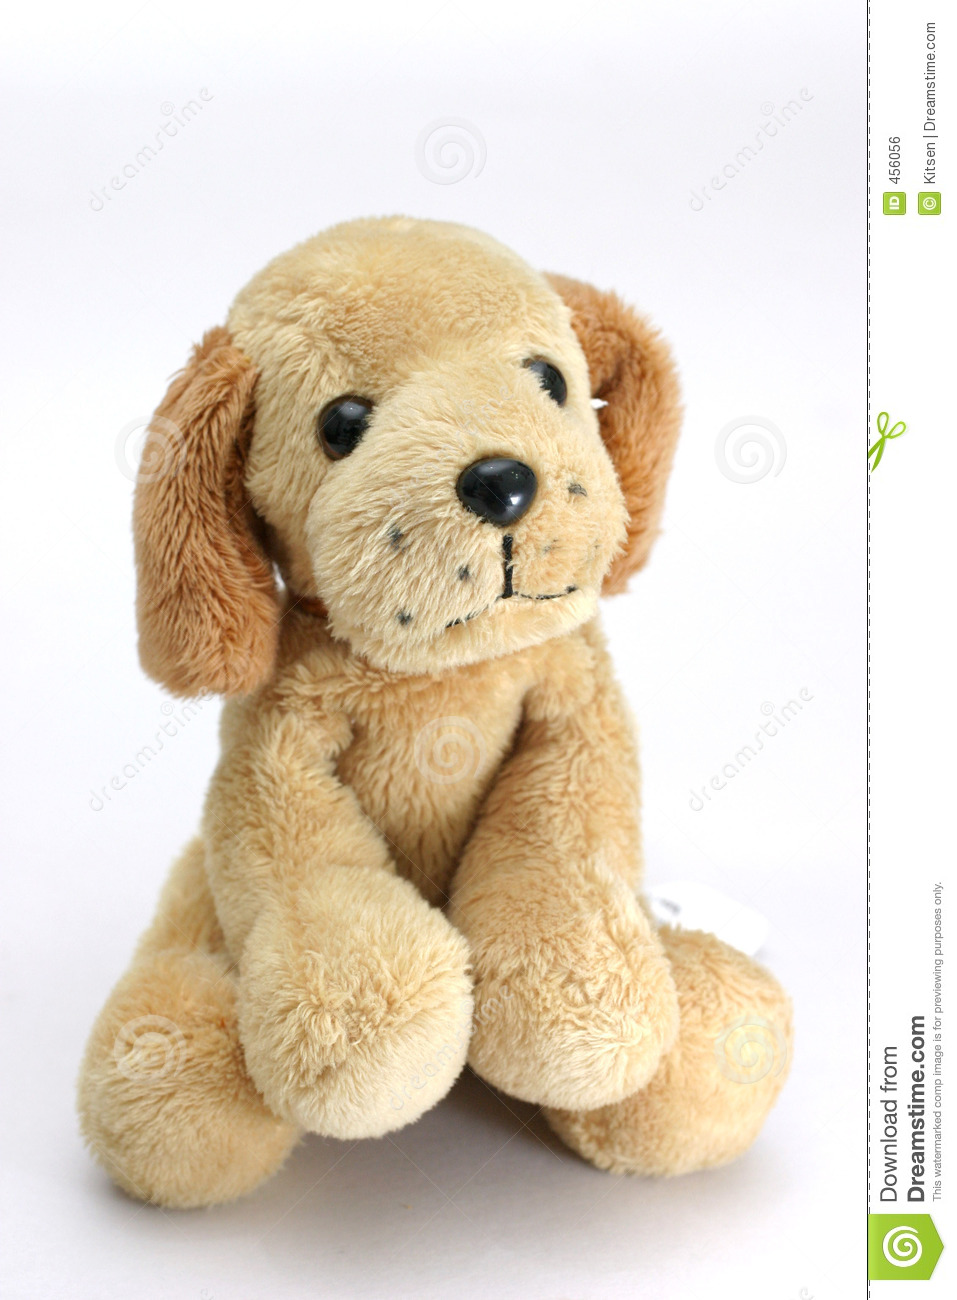 Boo The Cutest Dog Soft Toy